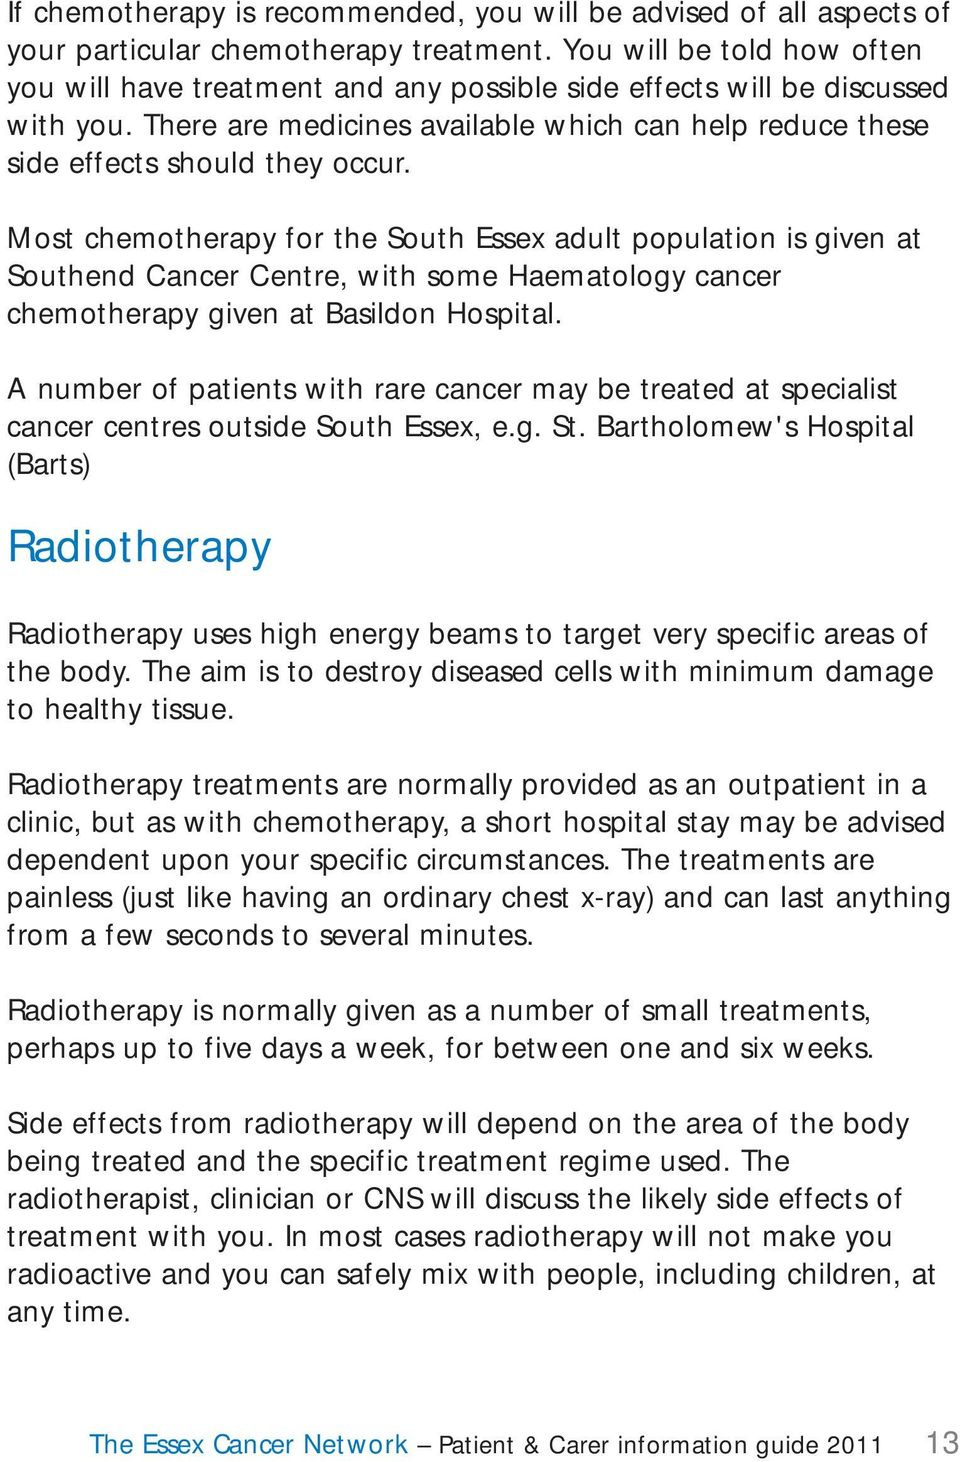 Most chemotherapy for the South Essex adult population is given at Southend Cancer Centre, with some Haematology cancer chemotherapy given at Basildon Hospital.